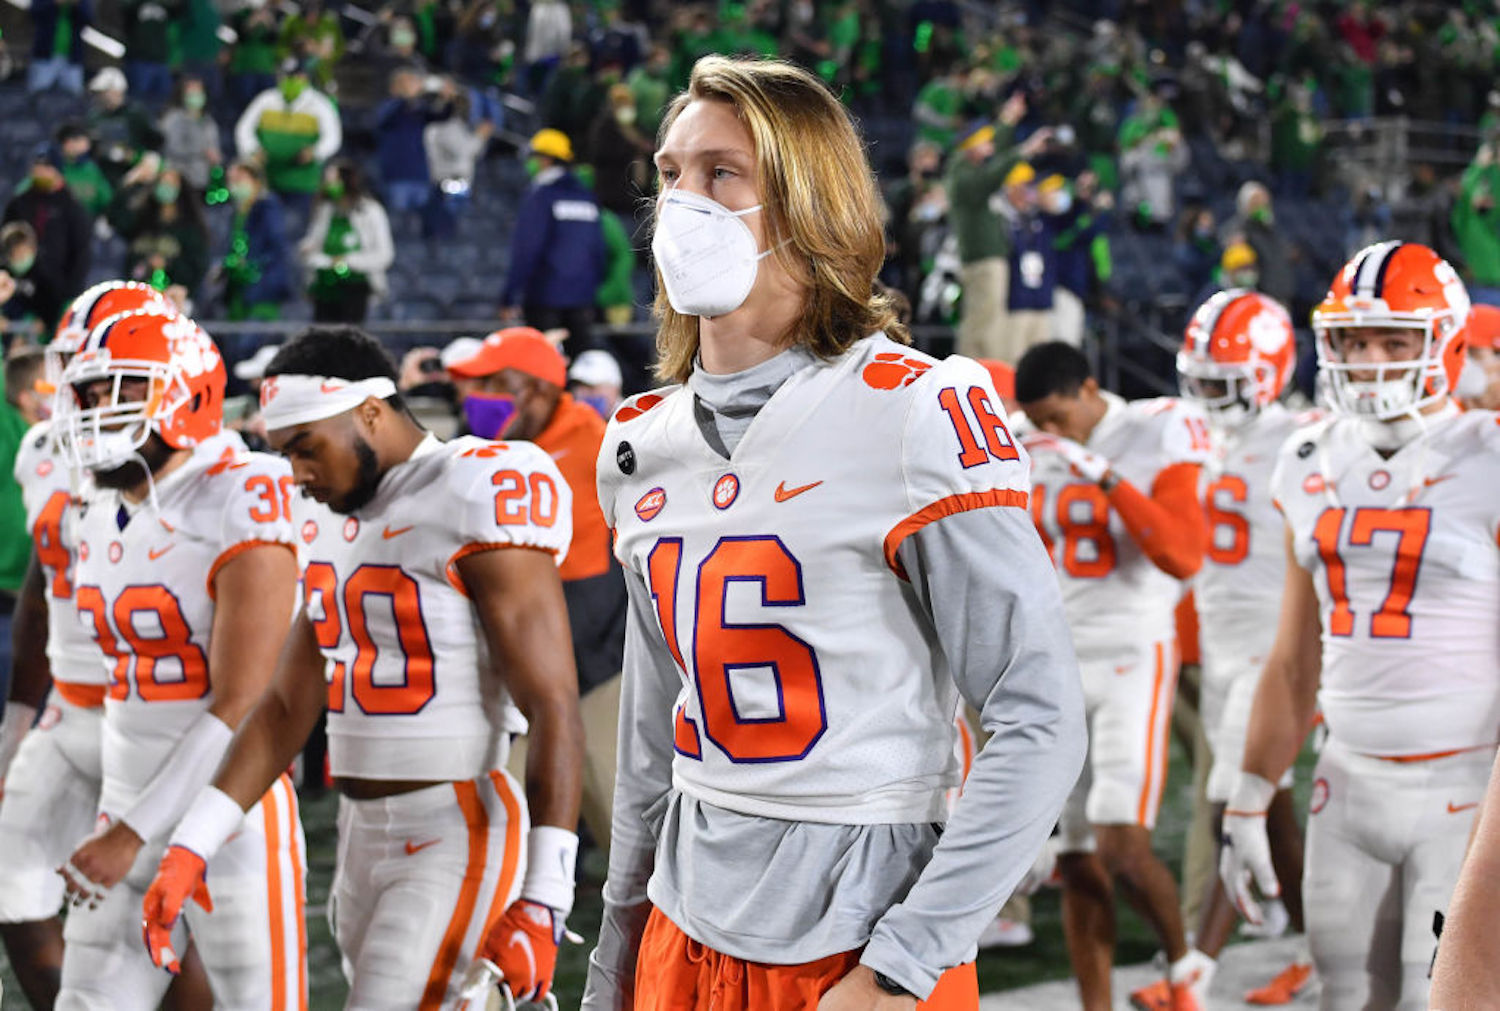 Clemson suffered a heartbreaking loss on Saturday night in South Bend, but they still have a path to the College Football Playoff in 2021.